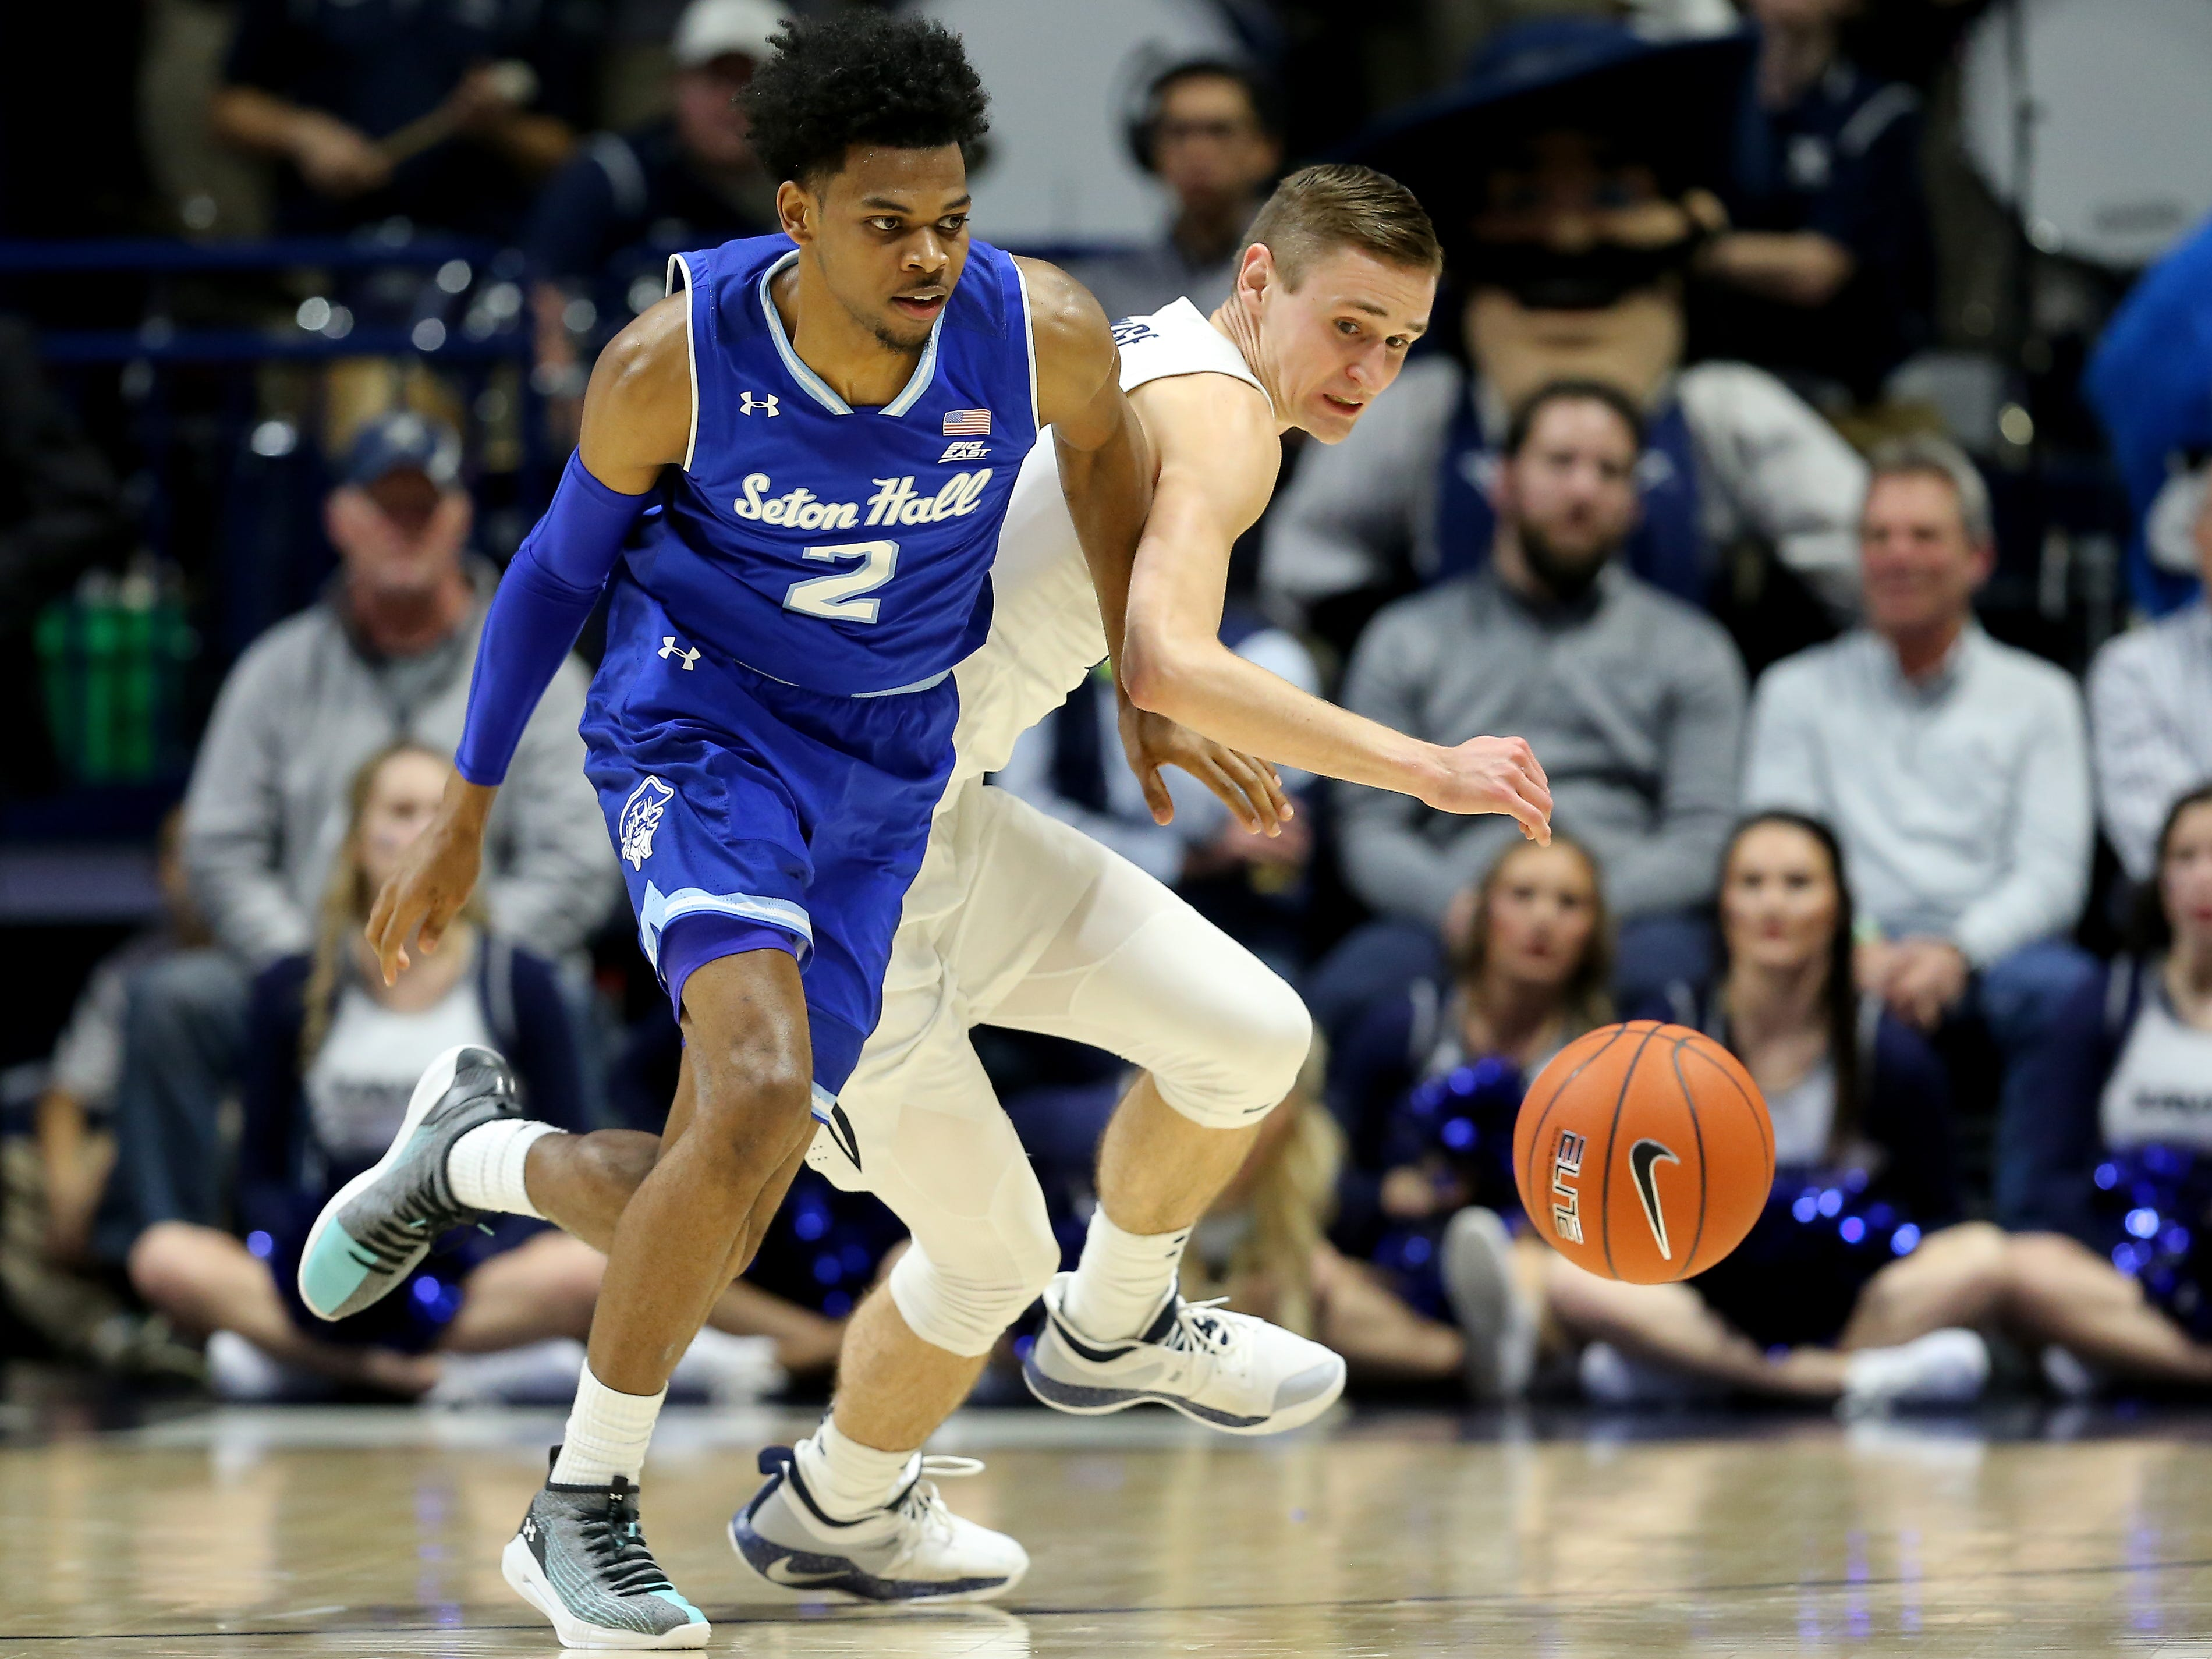 Xavier Musketeers forward Ryan Welage (32) and Seton Hall Pirates guard Anthony Nelson (2) chase a loose ball in the second half of an NCAA college basketball game, Wednesday, Jan. 2, 2019, at the Cintas Center in Cincinnati. Seton Hall won 80-70.